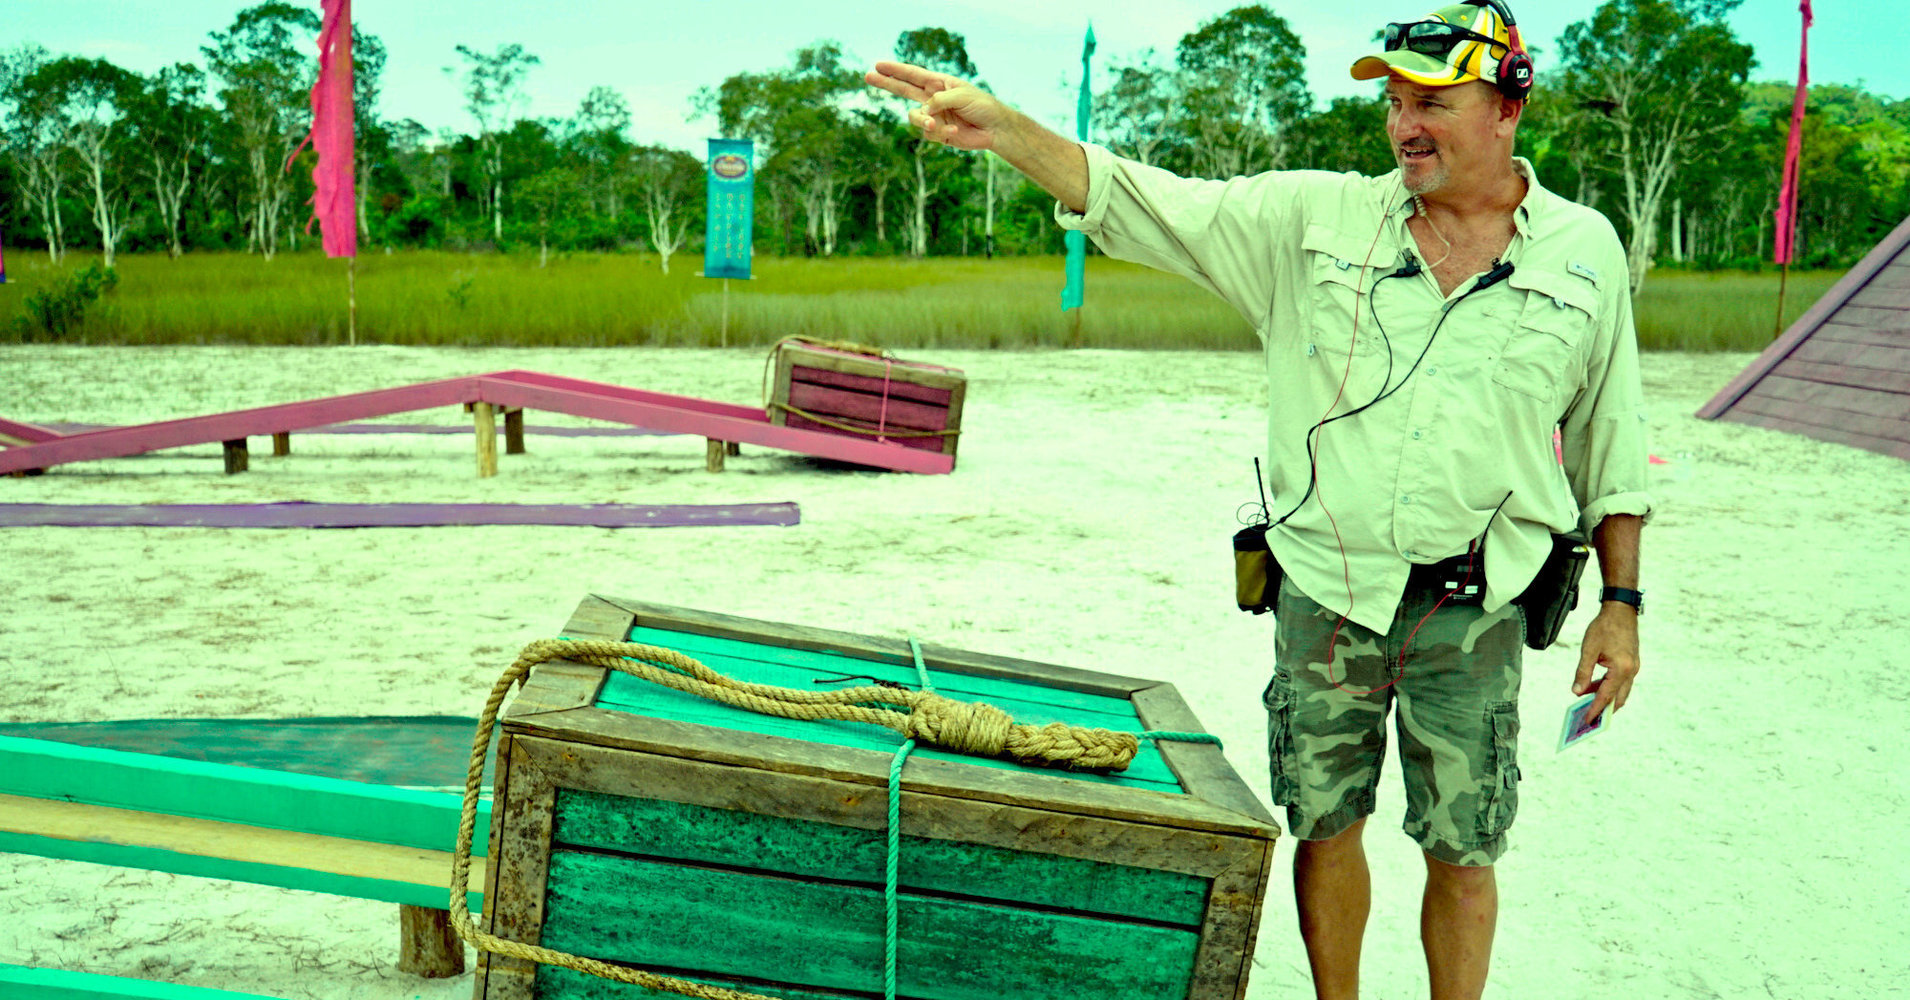 The Torture King Of Reality TV Explains How He Dreams Up 'Survivor' Challenges